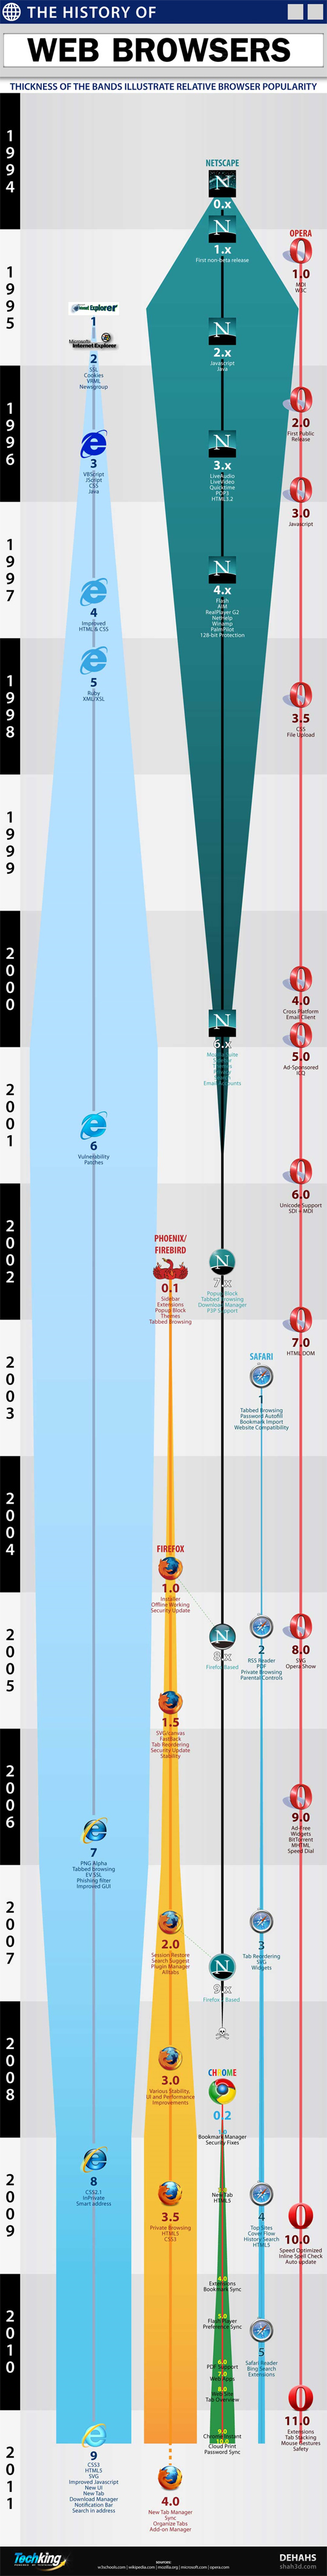 The Evolution Of Web Browsers (Infographic) 4